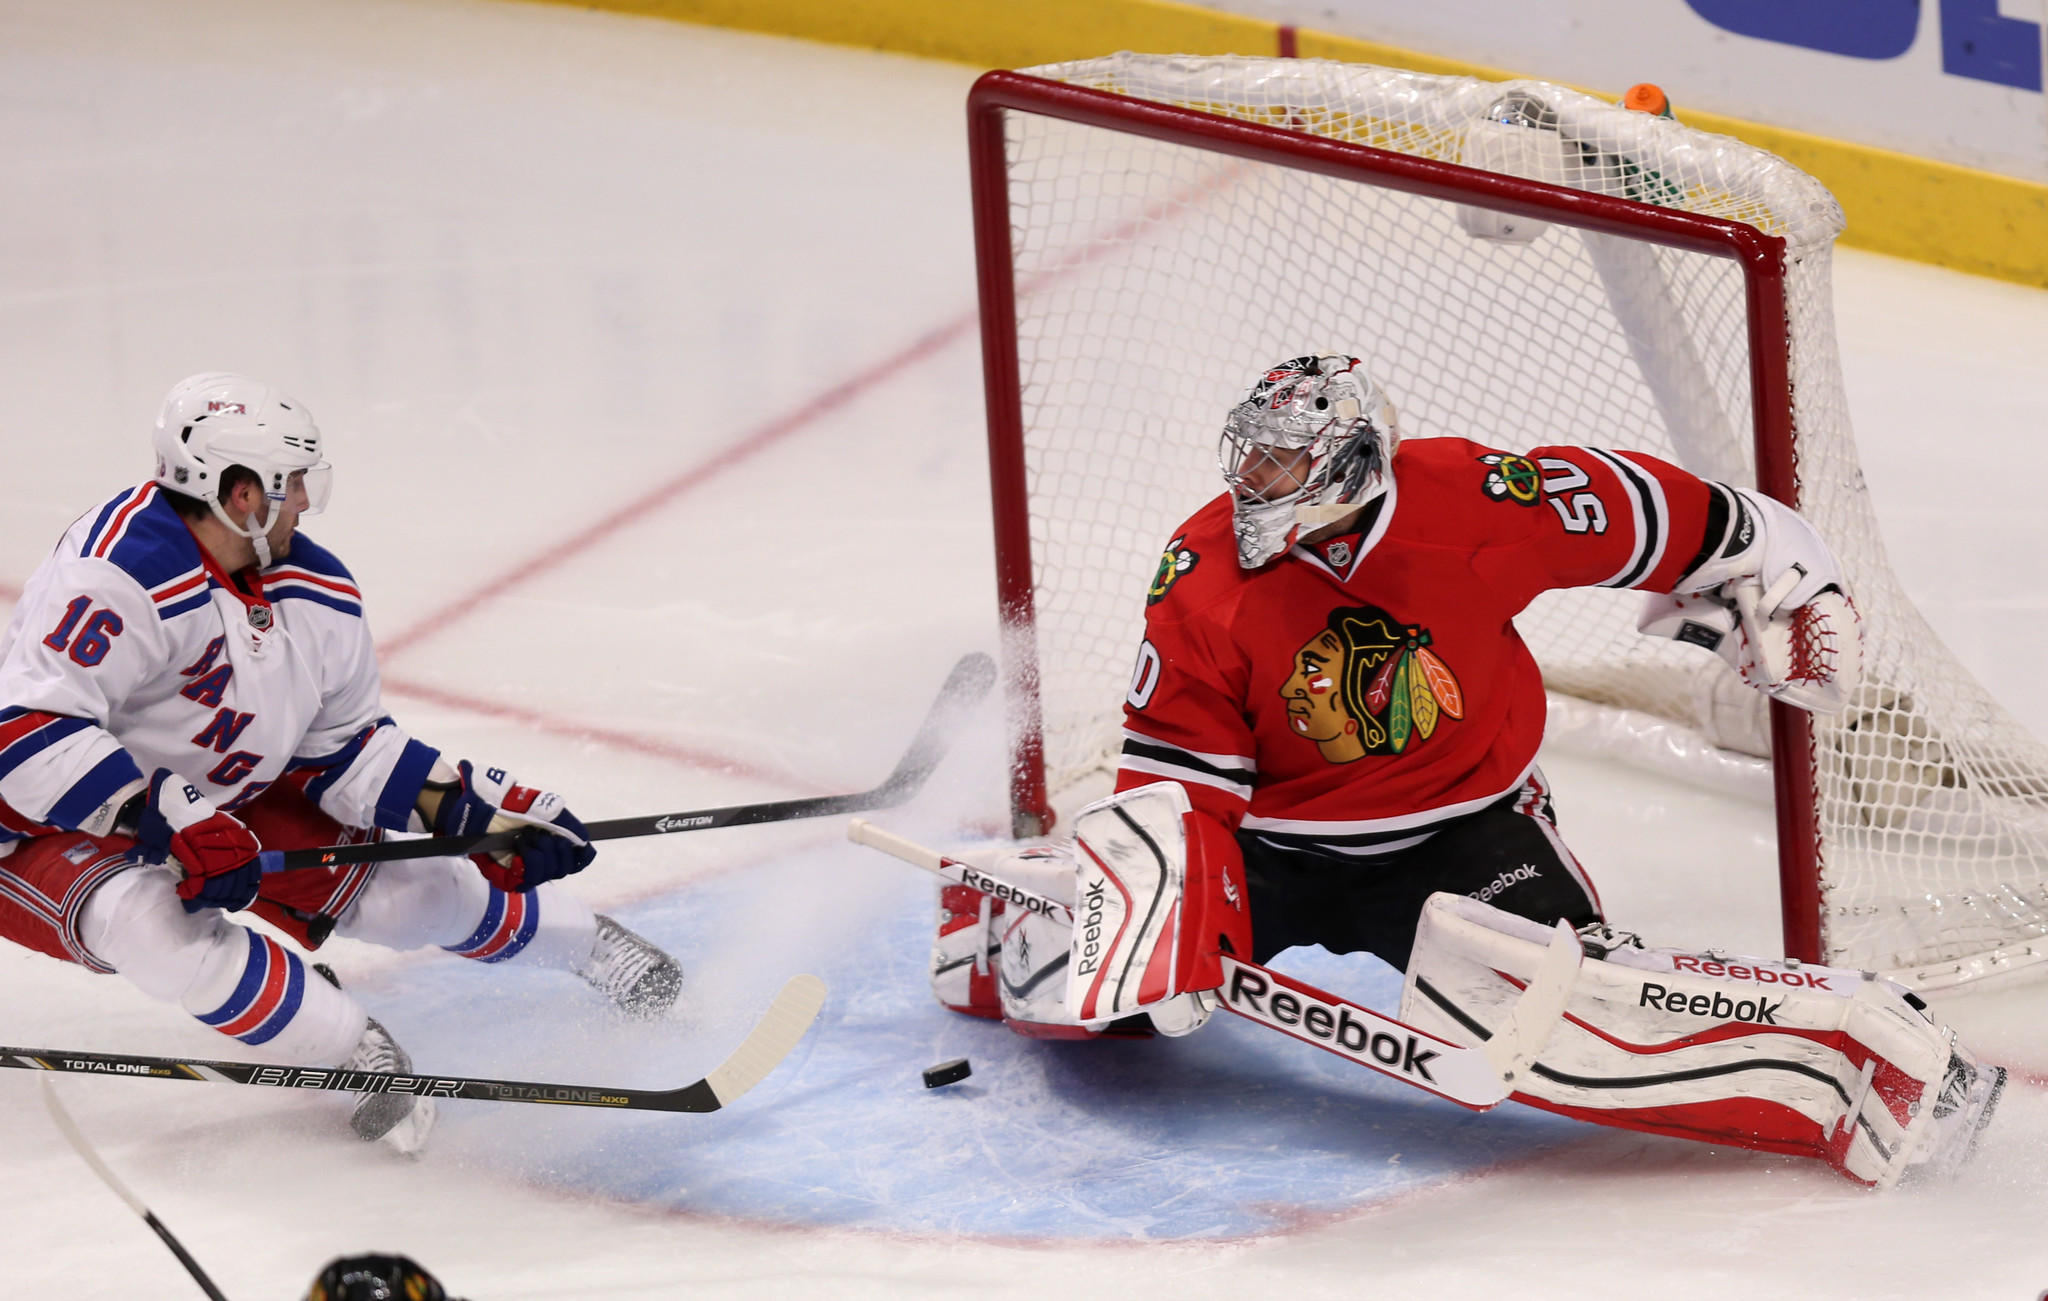 Corey Crawford's play has been gradually getting better since his return from injury.